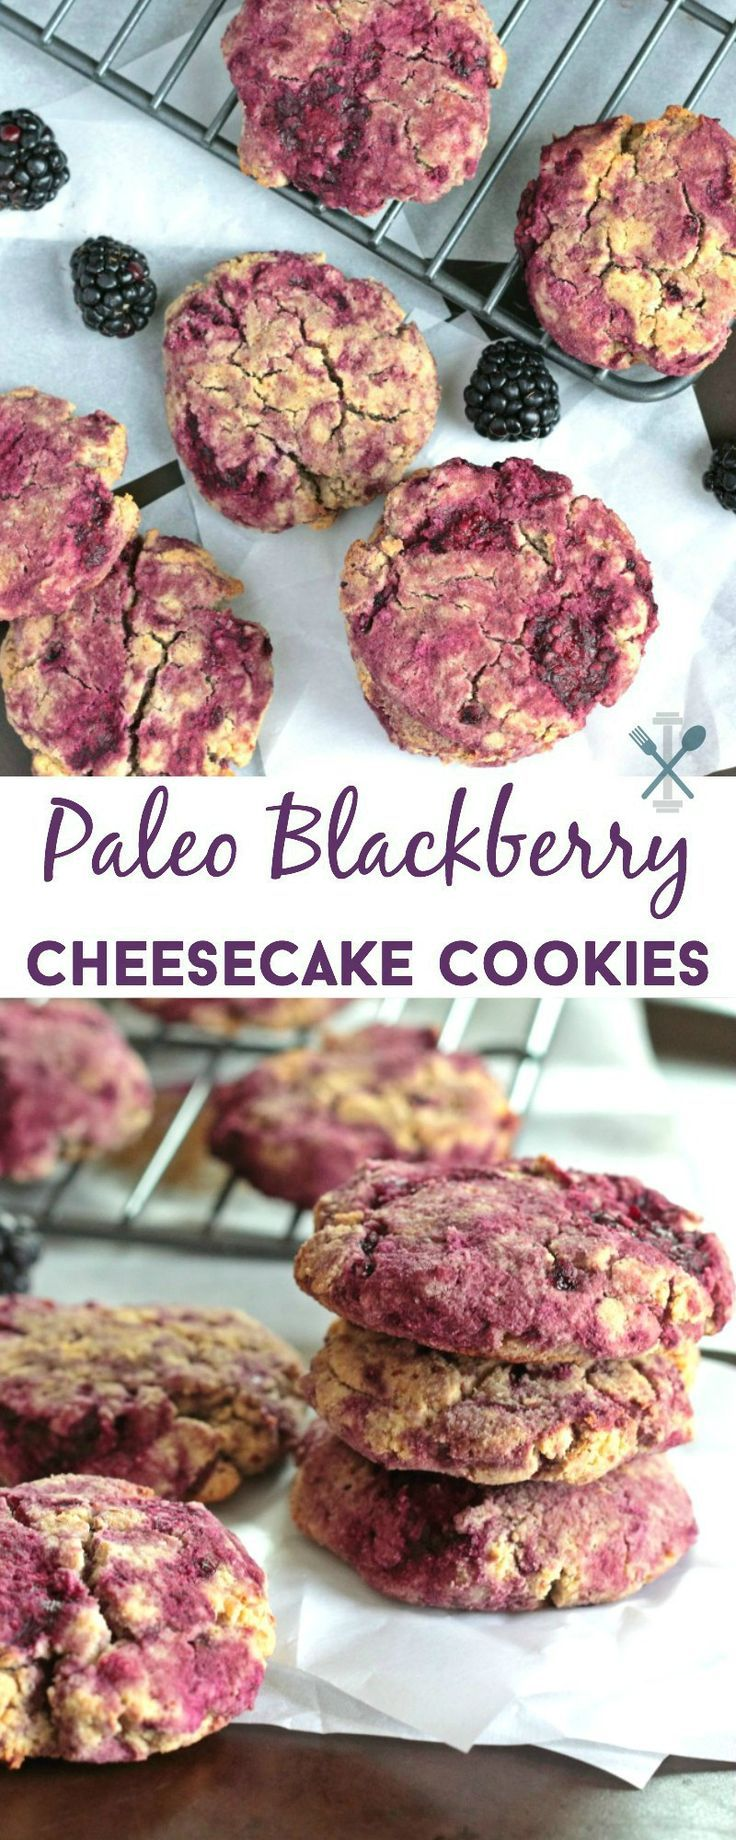 These paleo blackberry cheesecake cookies are delicious and dairy free! You won't believe how easy it is to make these sweet treats with an almond 'cheese' that takes just a few minutes! Plus no gluten and no refined sugar!